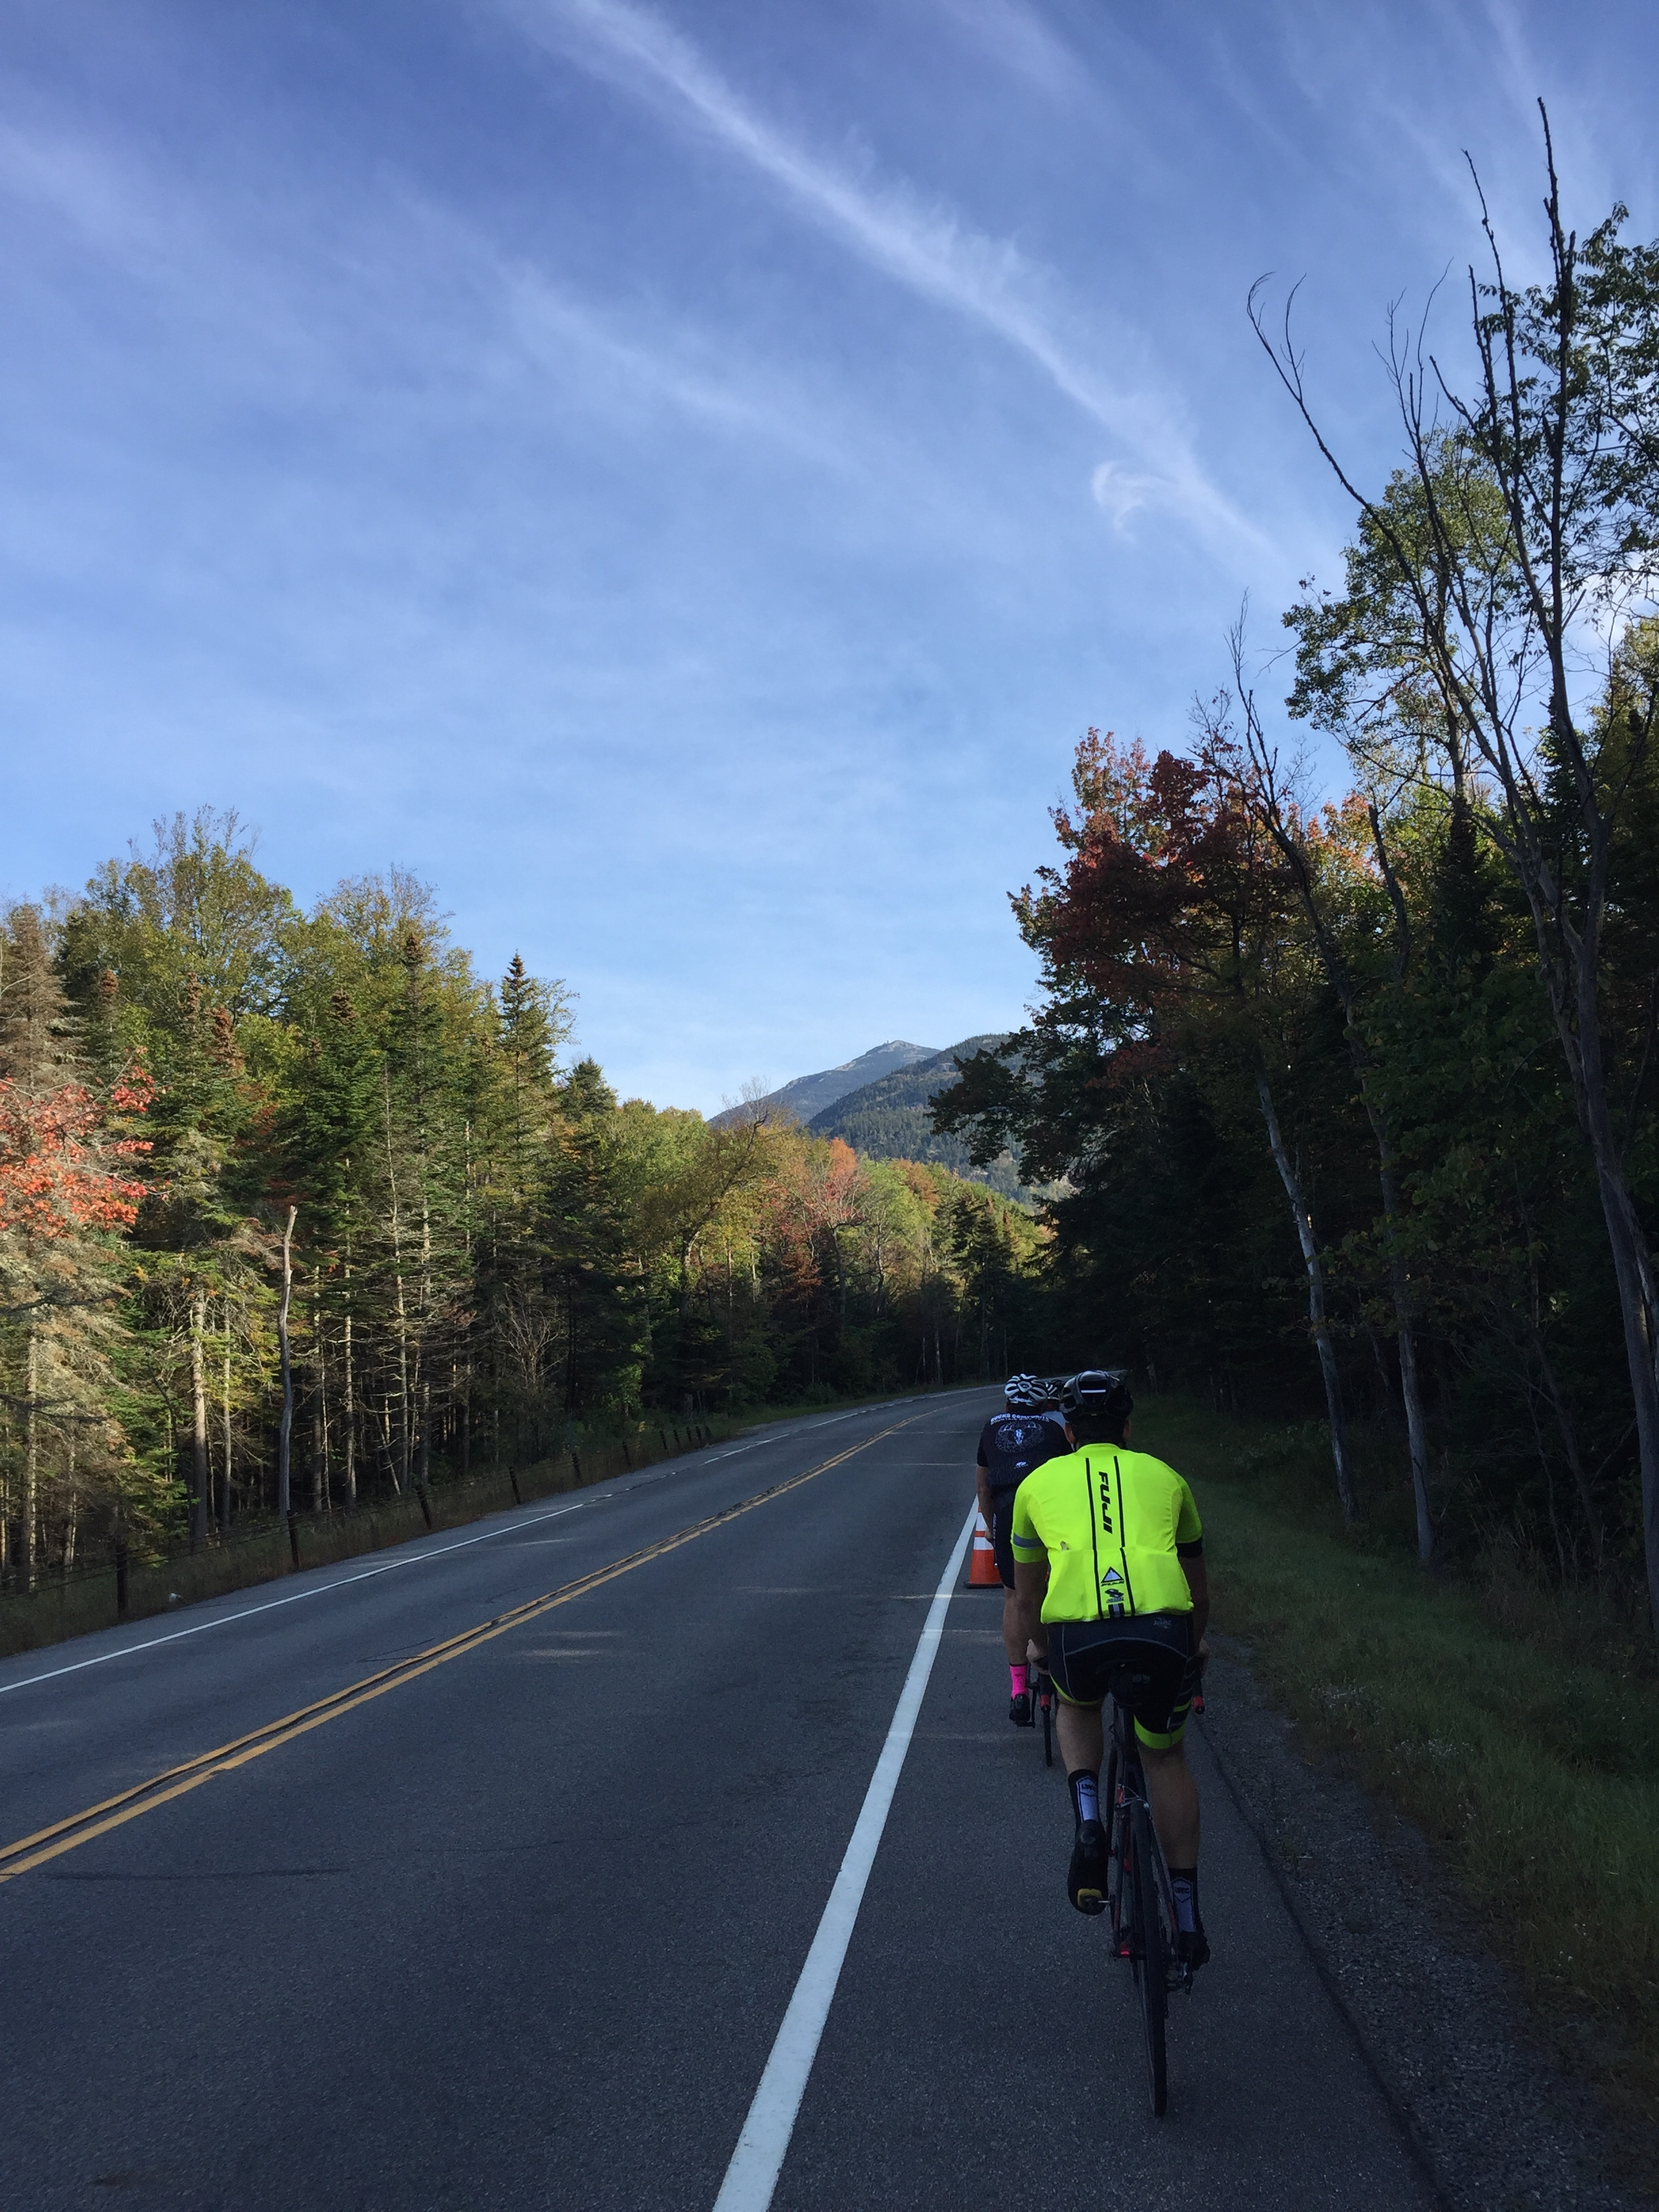 From River Road we continued to easily descend toward Wilmington via Route 86. The mountain view lurked here, too. Yes that is a cone in the photo. A relay running event climbed 'The Notch' out of Wilmington and the cones marked the course. We decided it was safer to ride on the shoulder-side of the cones.